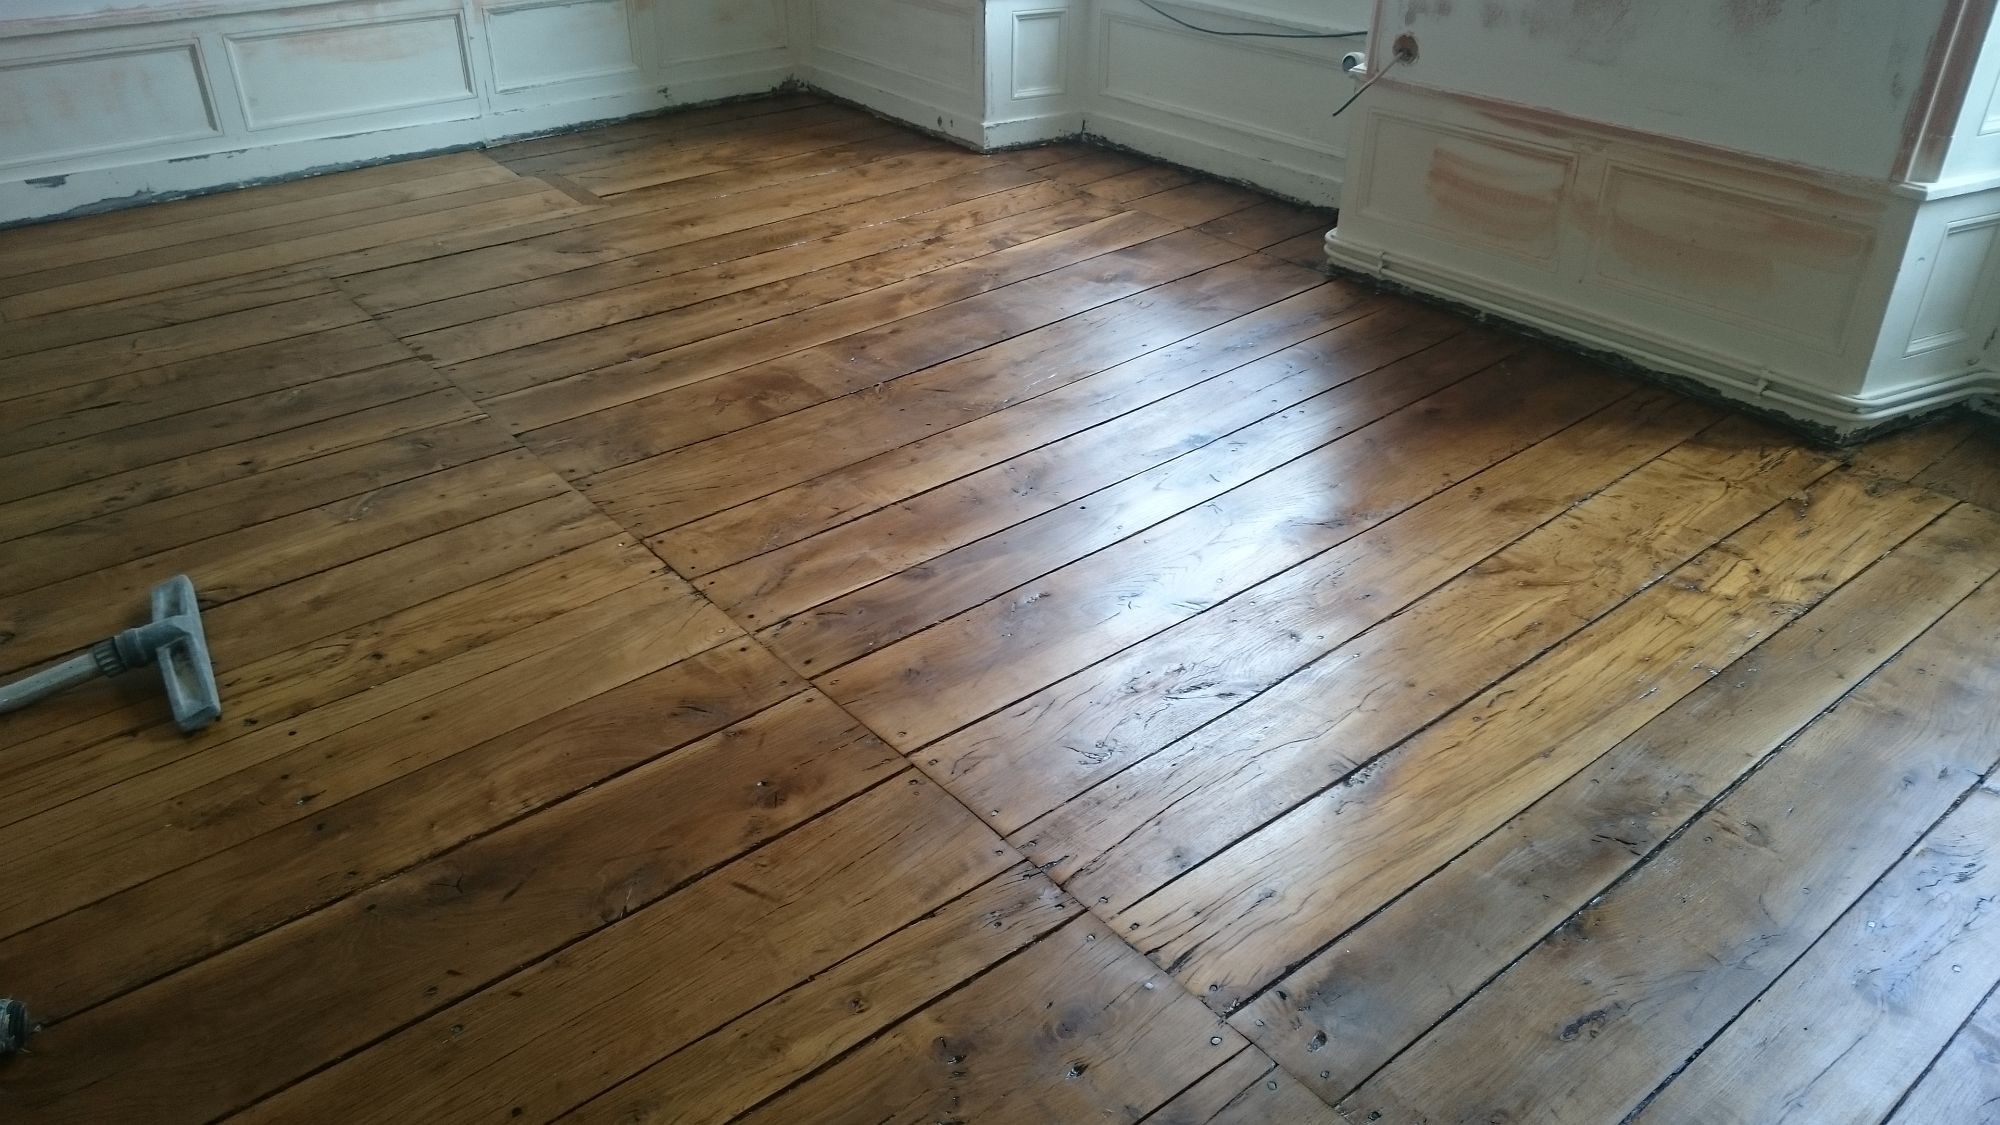 R novation plancher ch ne ancien angoul me charente 16 - Renovation parquet ancien ...